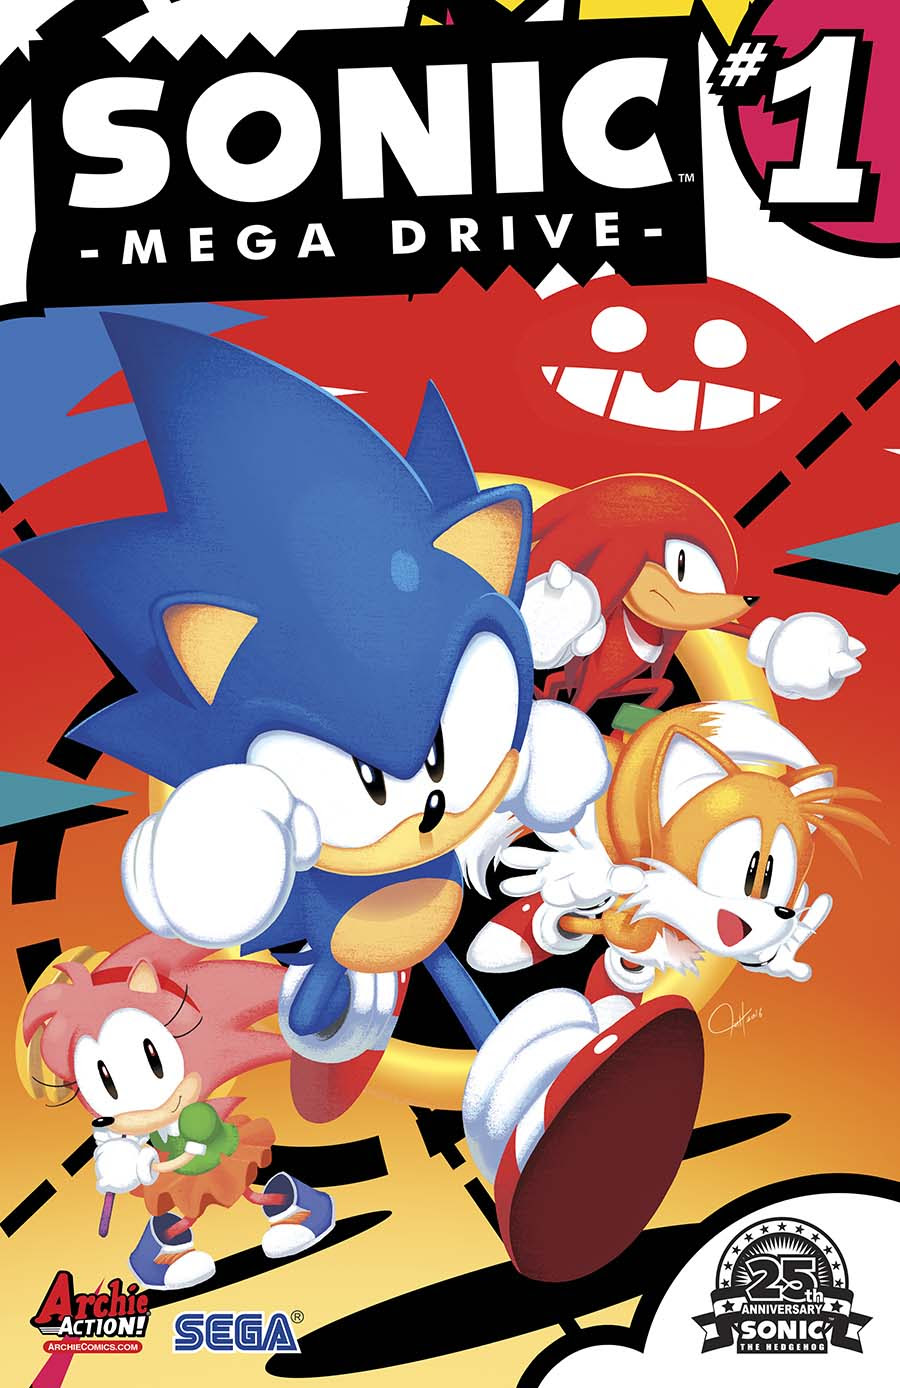 Sonic: Mega Drive Cover by Tyson Hesse